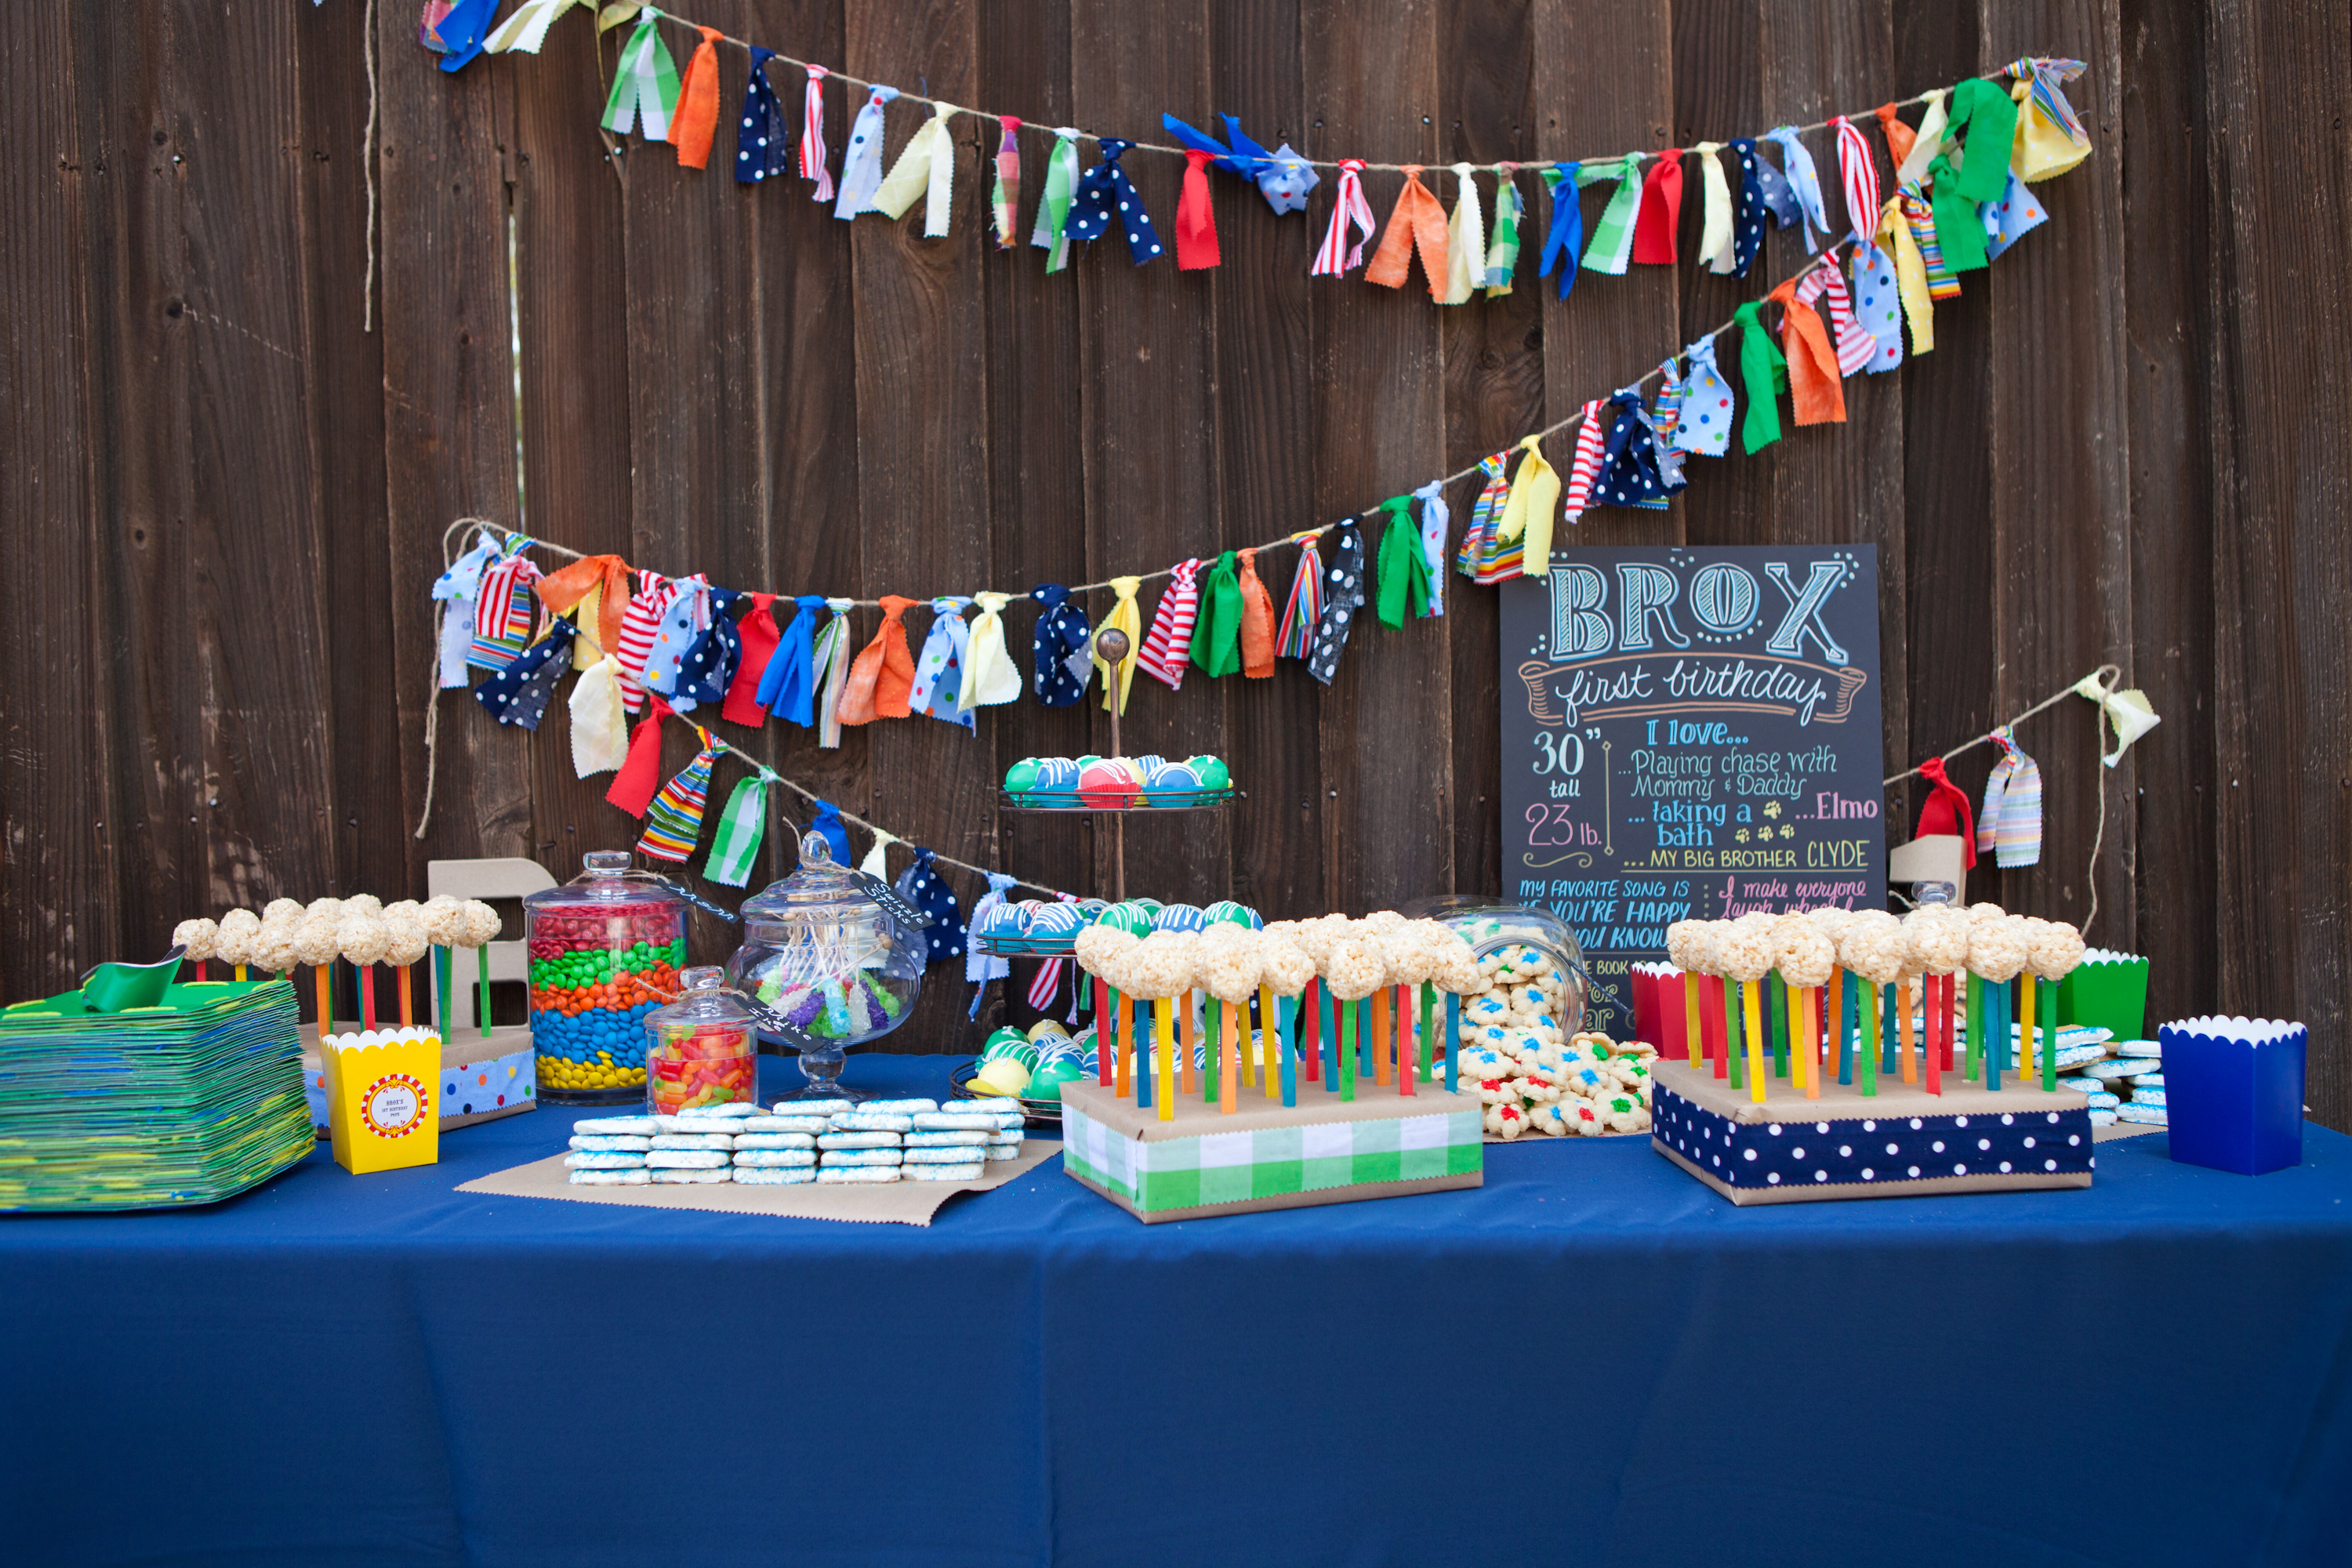 Brox S Primary Color First Birthday Party